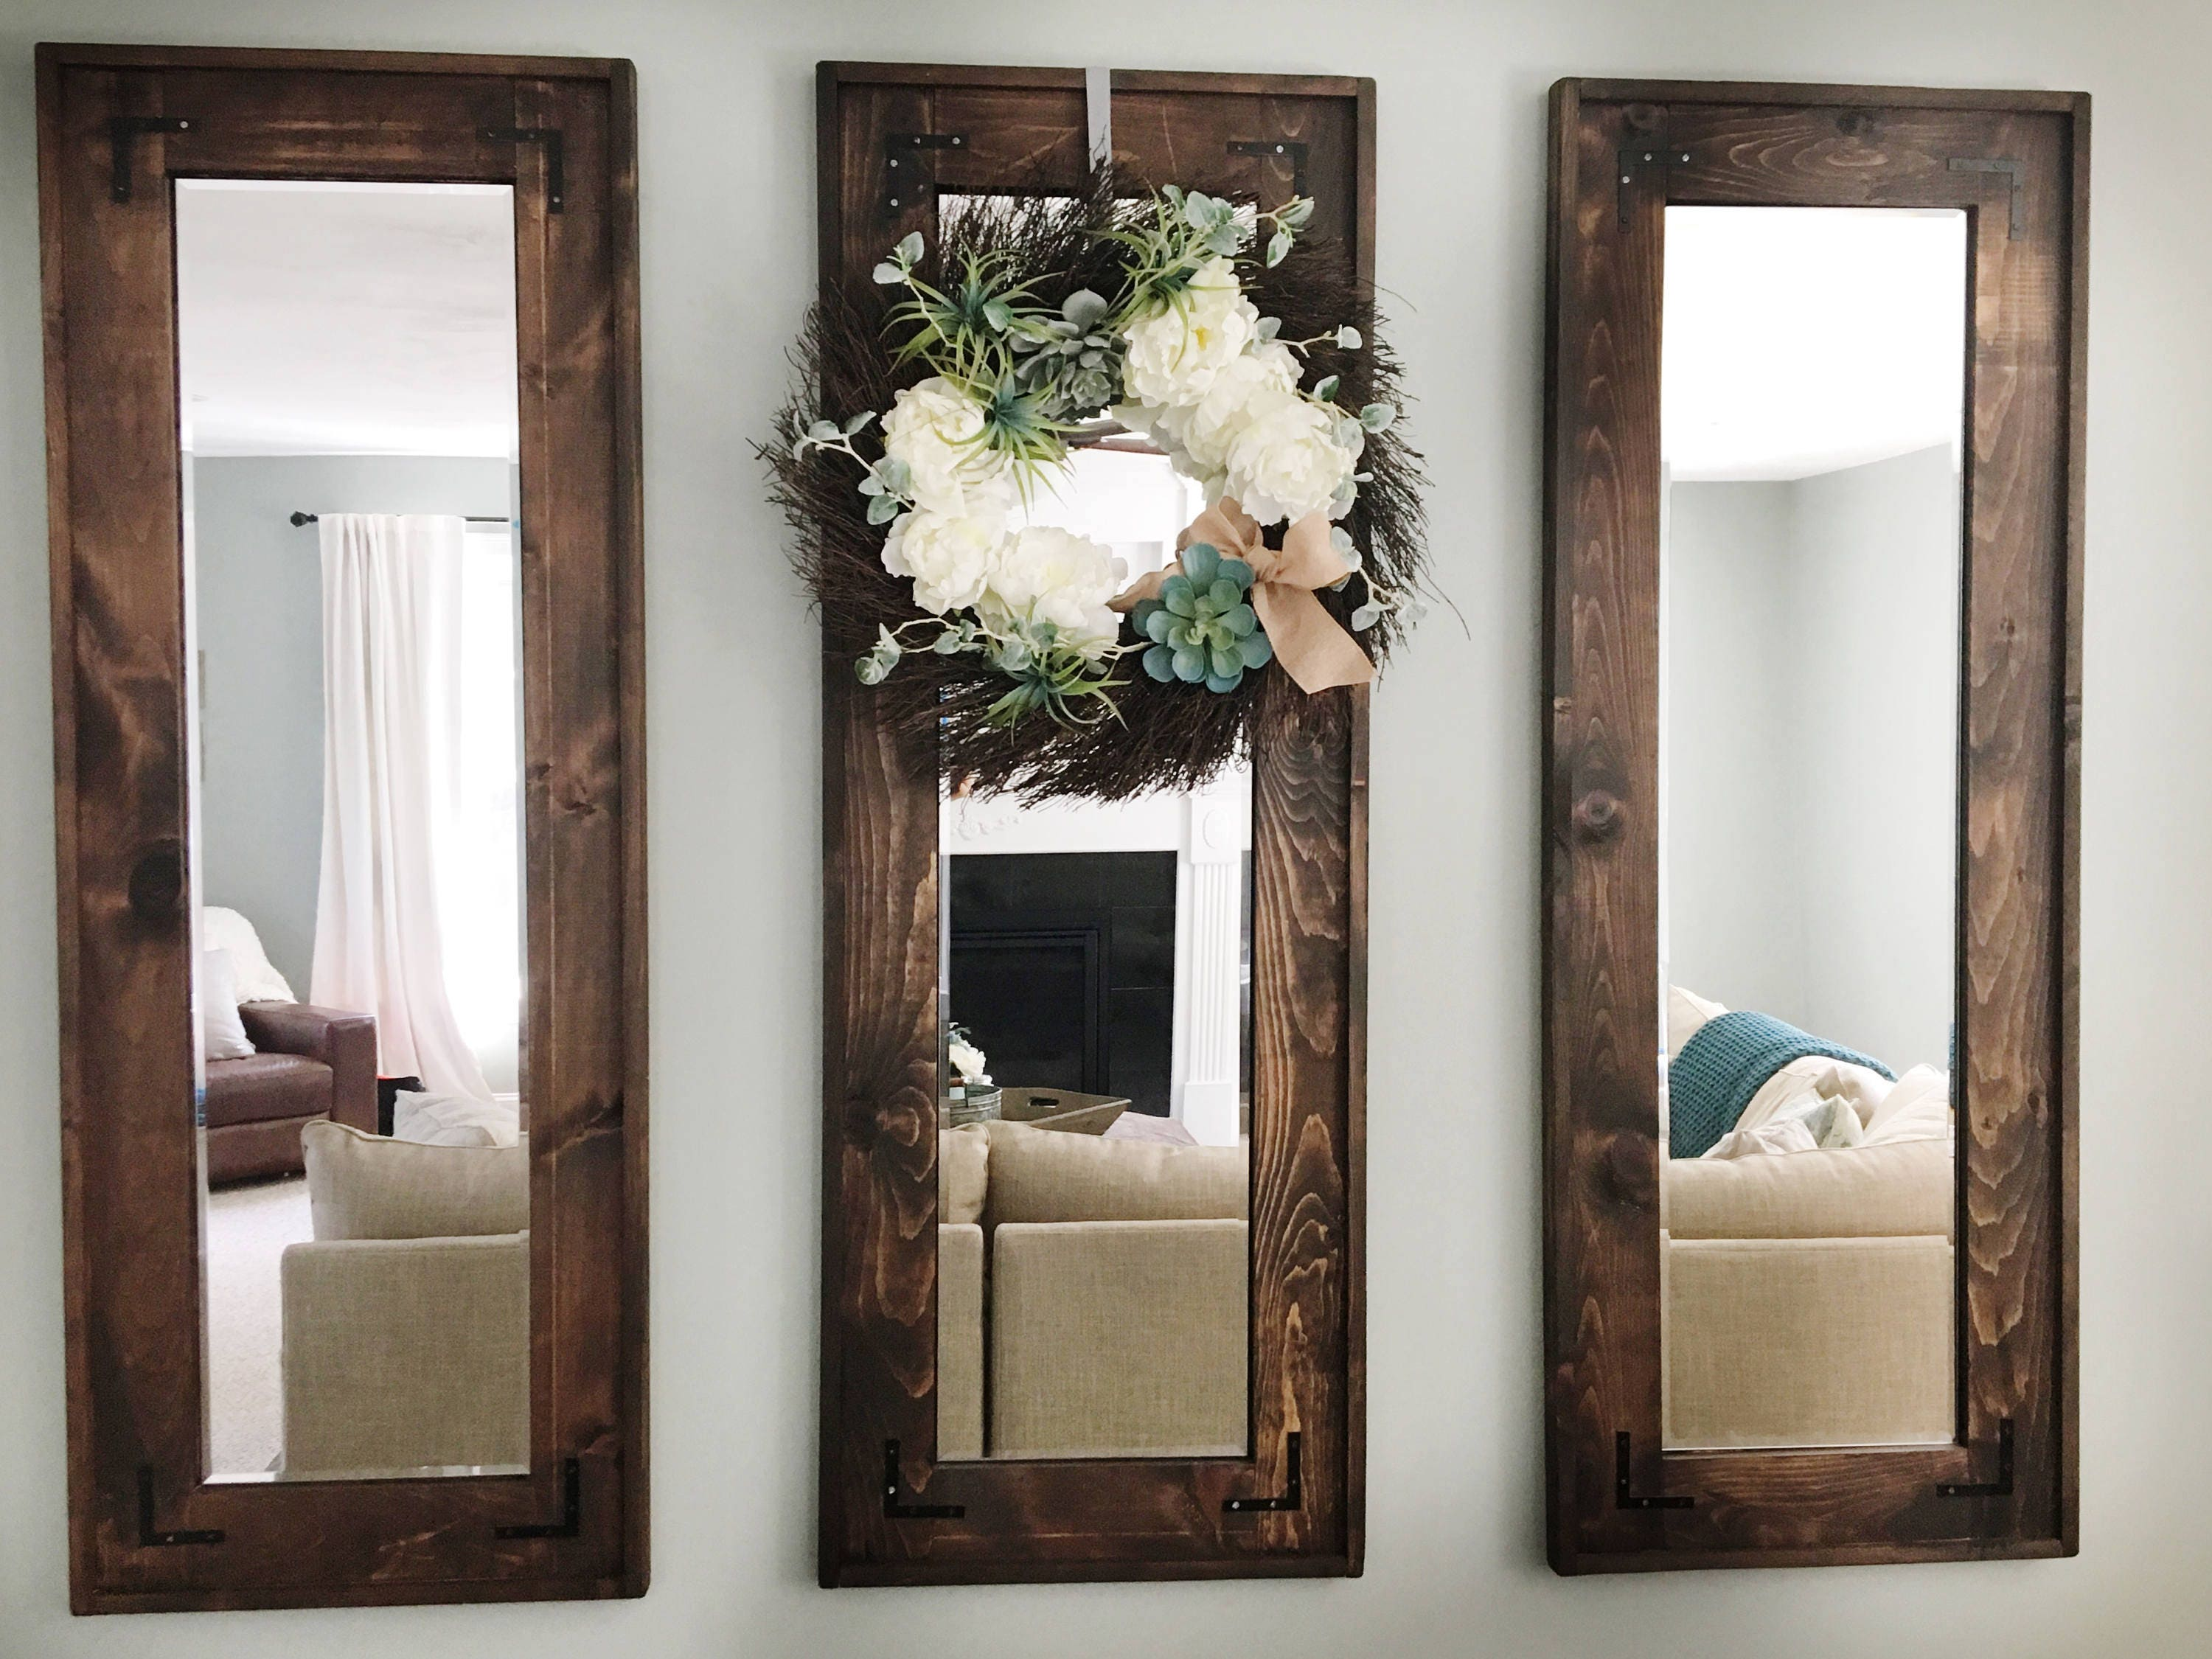 Set of 3 rustic farmhouse style full length mirror wall decor - Farmhouse style bathroom mirrors ...